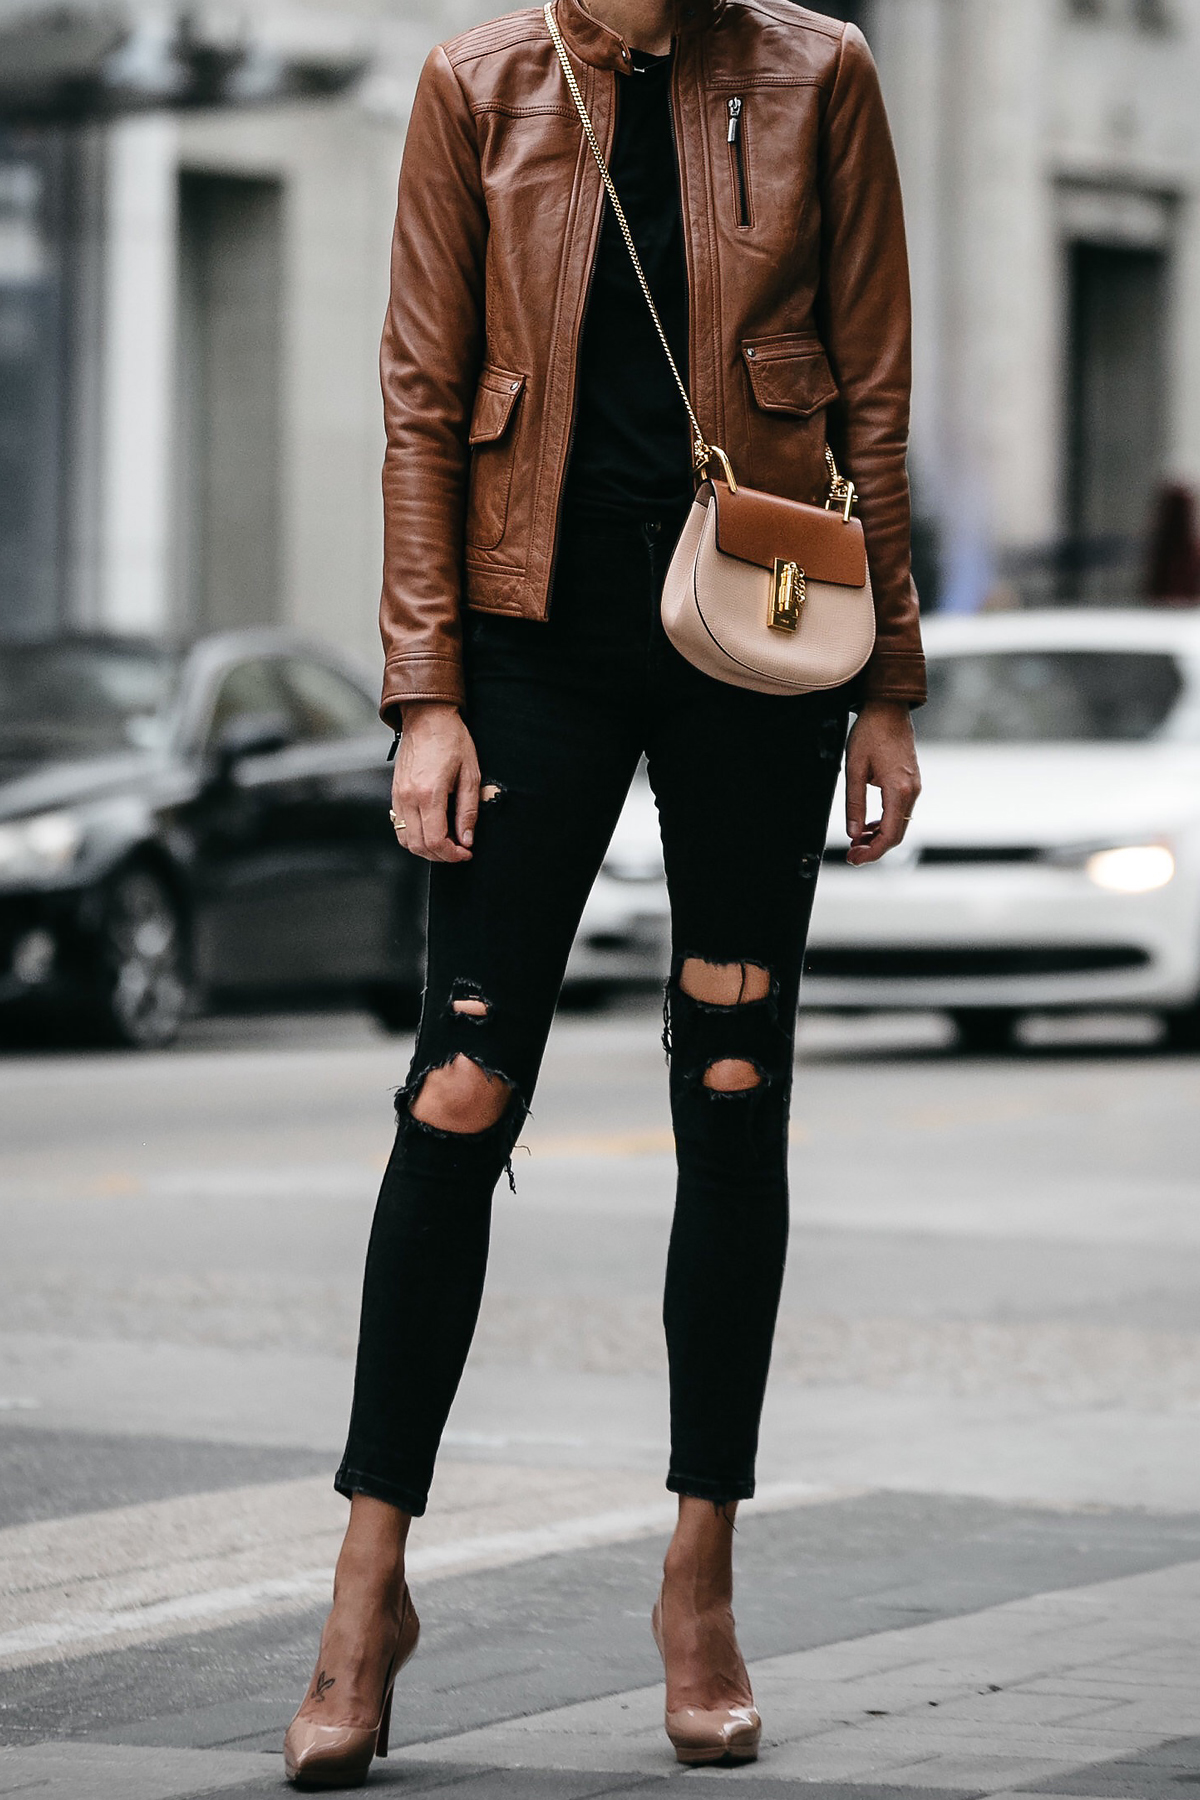 Tan Leather Moto Jacket Black Ripped Skinny Jeans Outfit Christian Louboutin Nude Pumps Chloe Drew Handbag Fashion Jackson Dallas Blogger Fashion Blogger Street Style